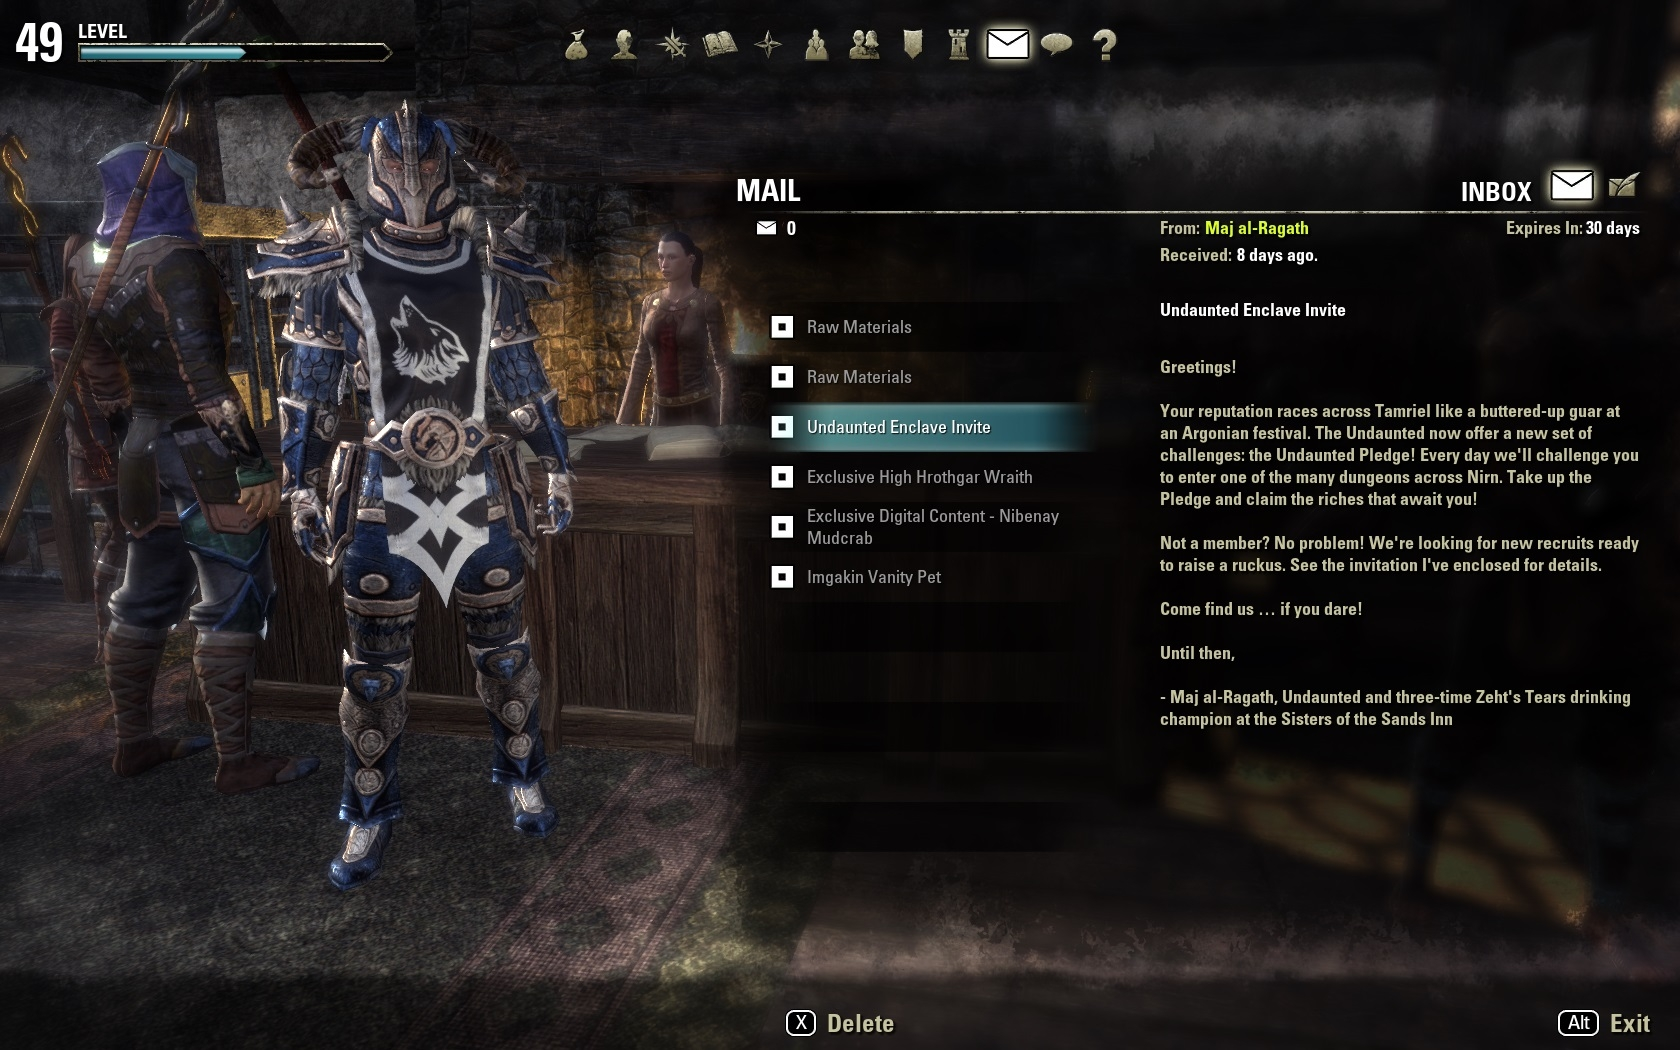 How Do I Craft Level  Gear In Eso